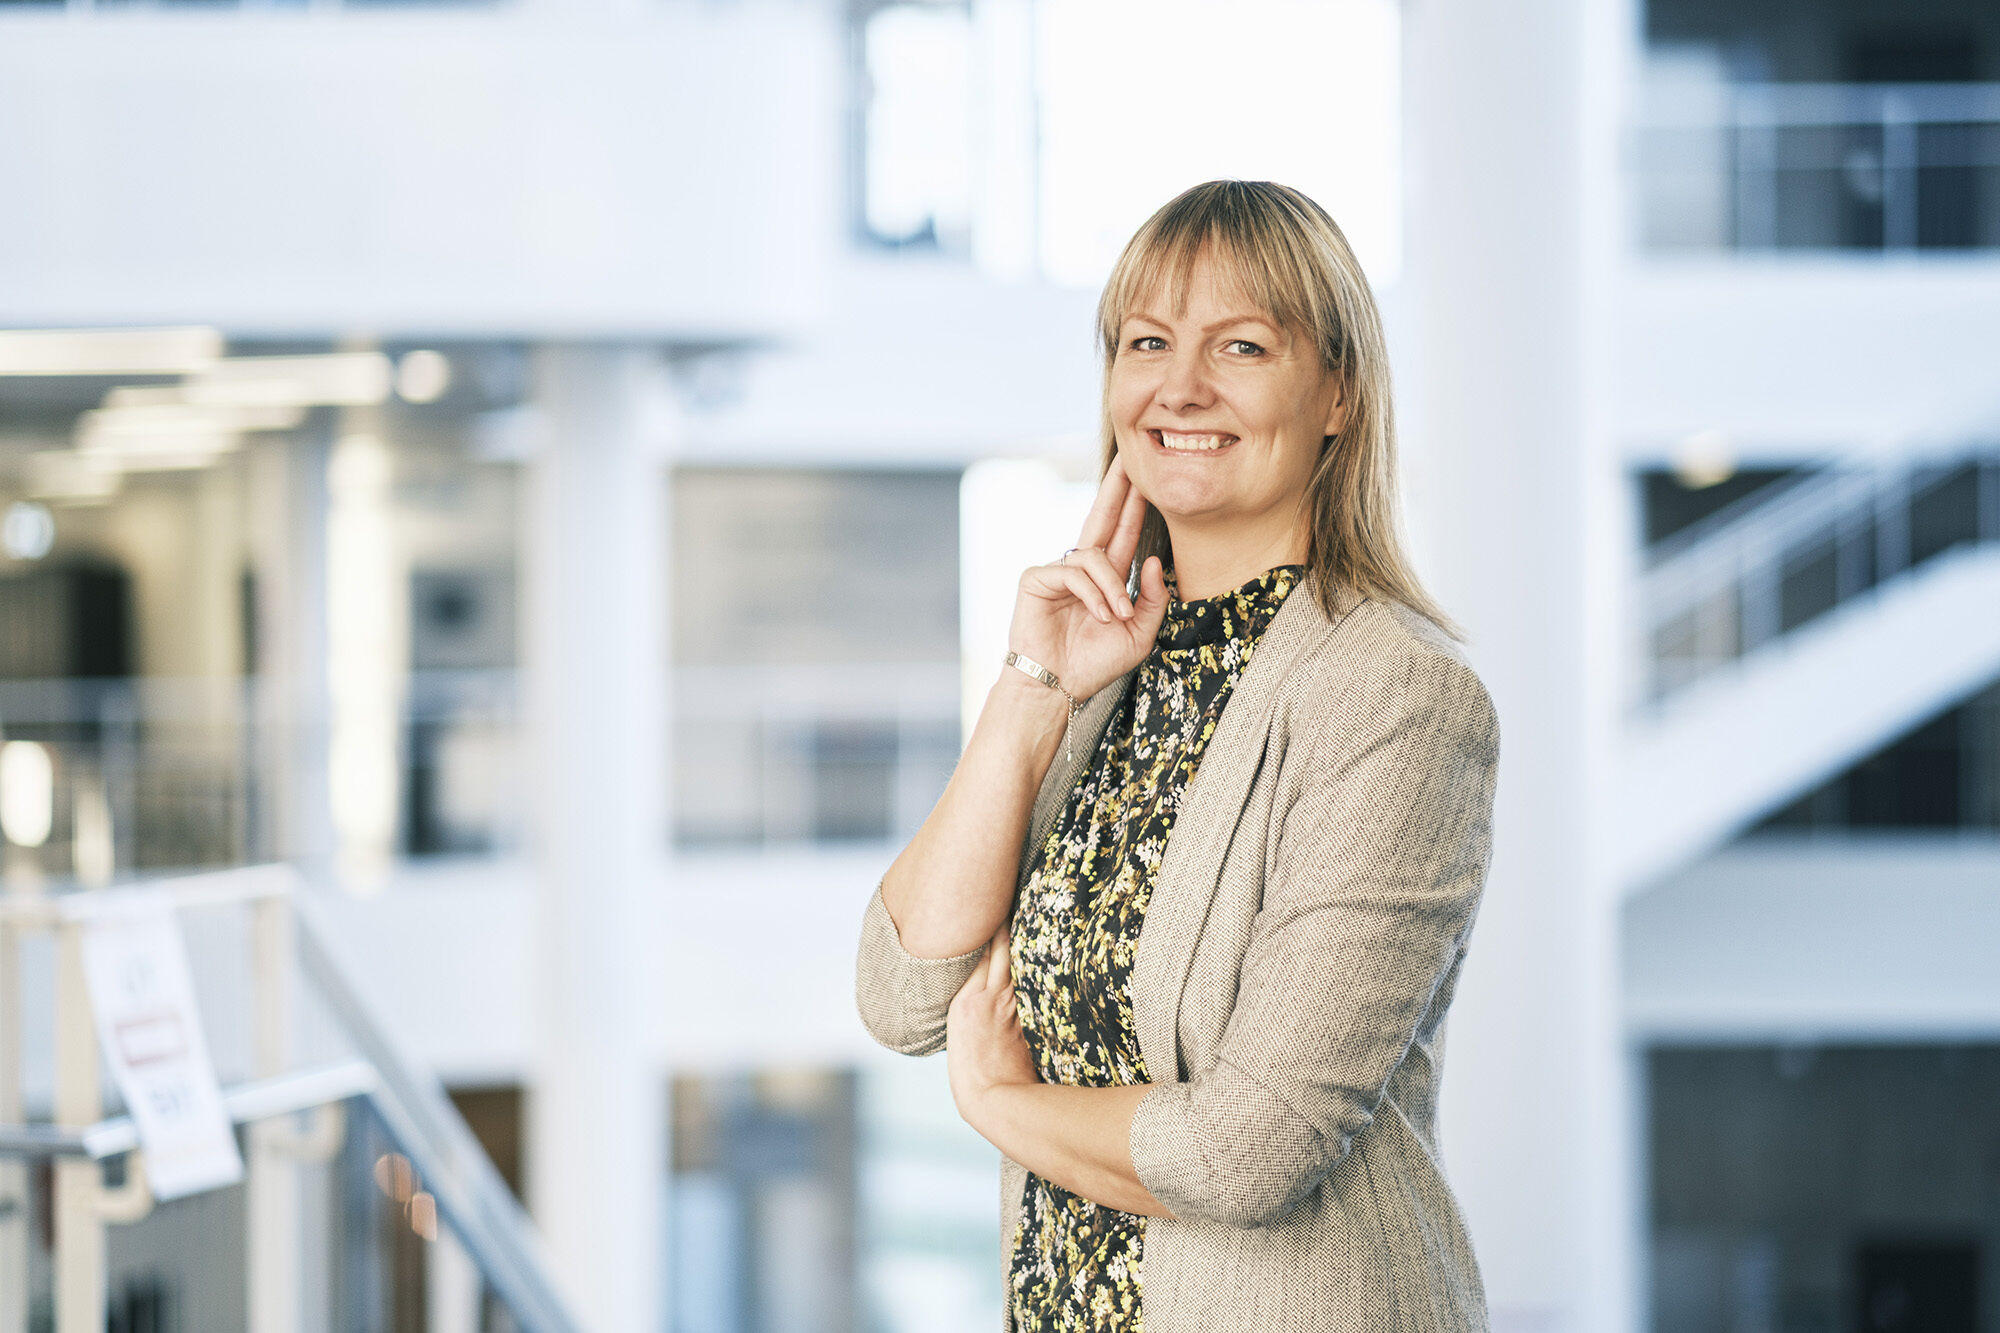 Dr. Erna Sif Arnardóttir is the Director of the Reykjavik University Sleep Institute, chairman of the Icelandic Sleep Research Society and a director of the board of the European Sleep Research Society